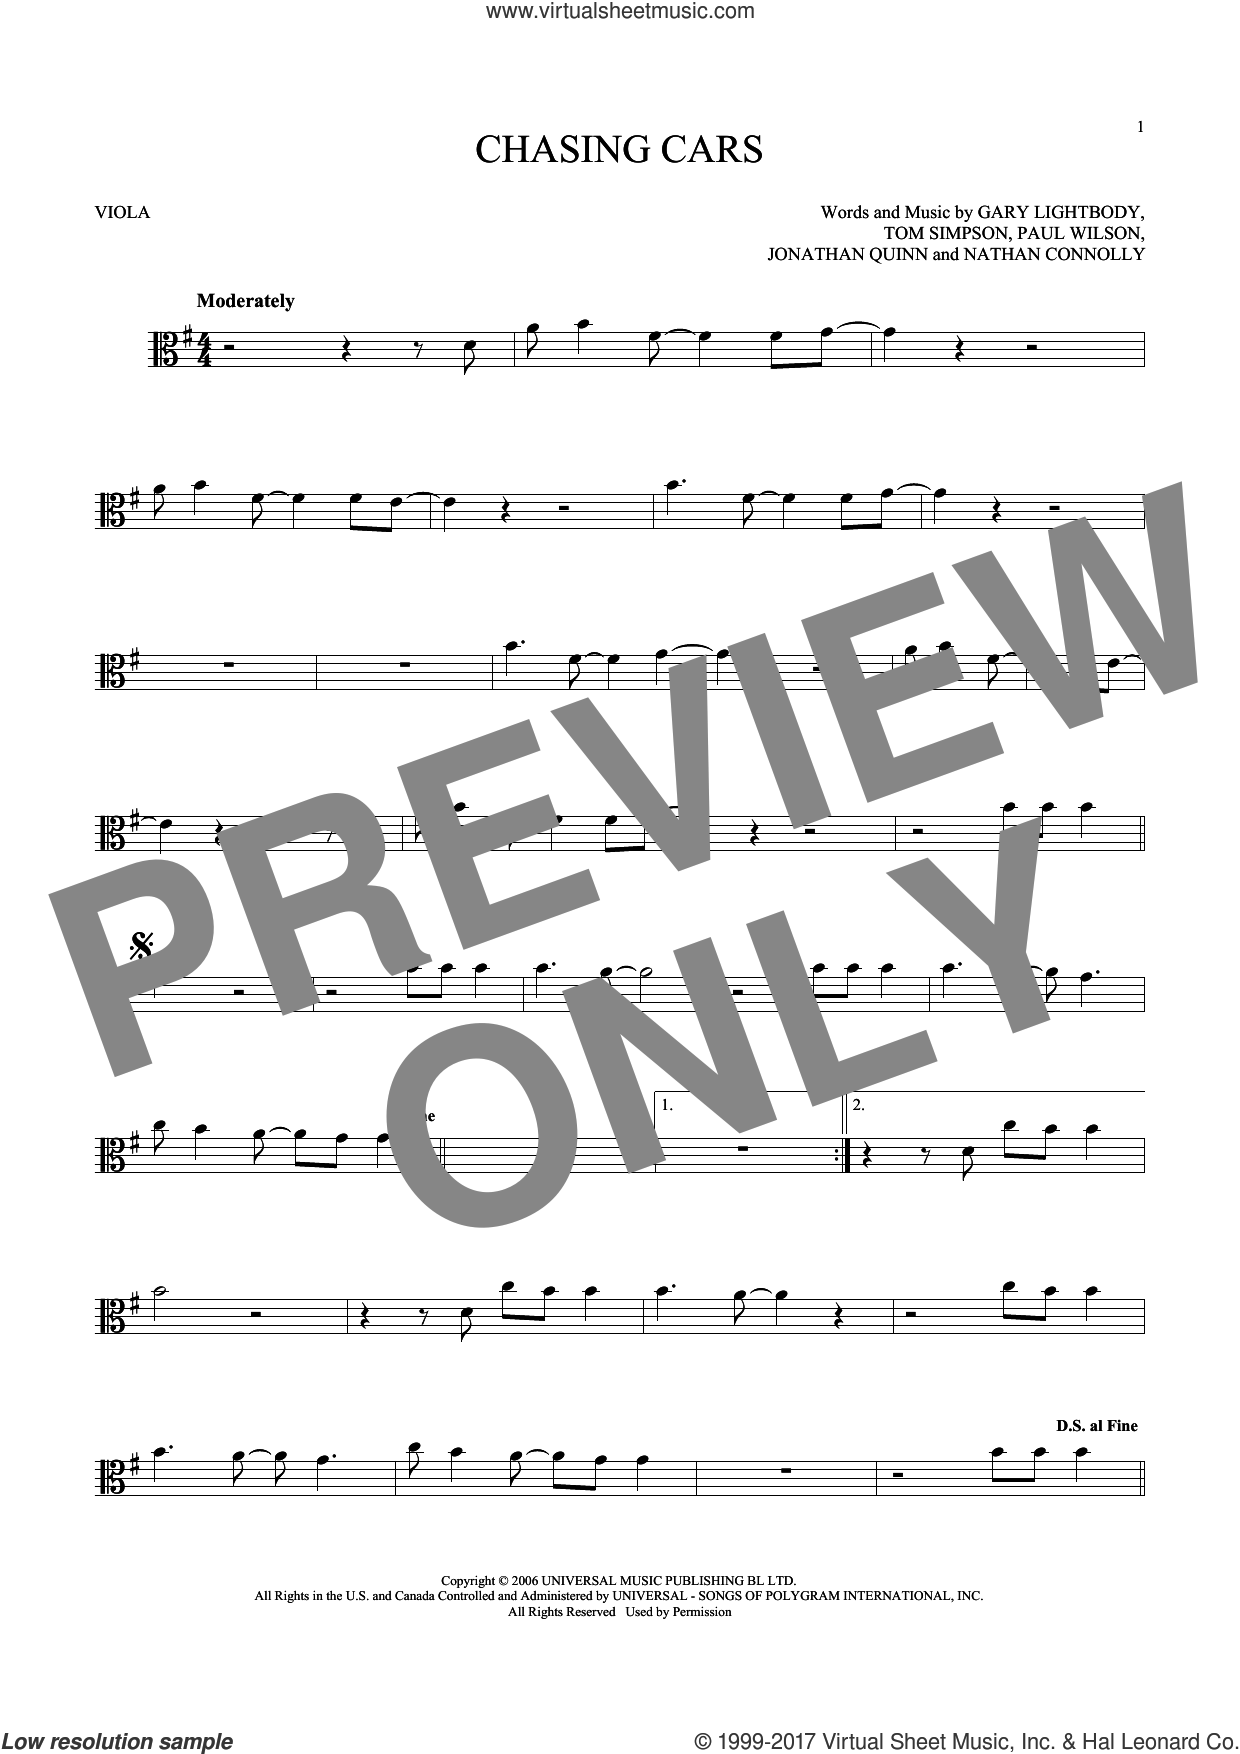 Chasing Cars sheet music for viola solo by Tom Simpson, Snow Patrol, Gary Lightbody, Nathan Connolly and Paul Wilson. Score Image Preview.